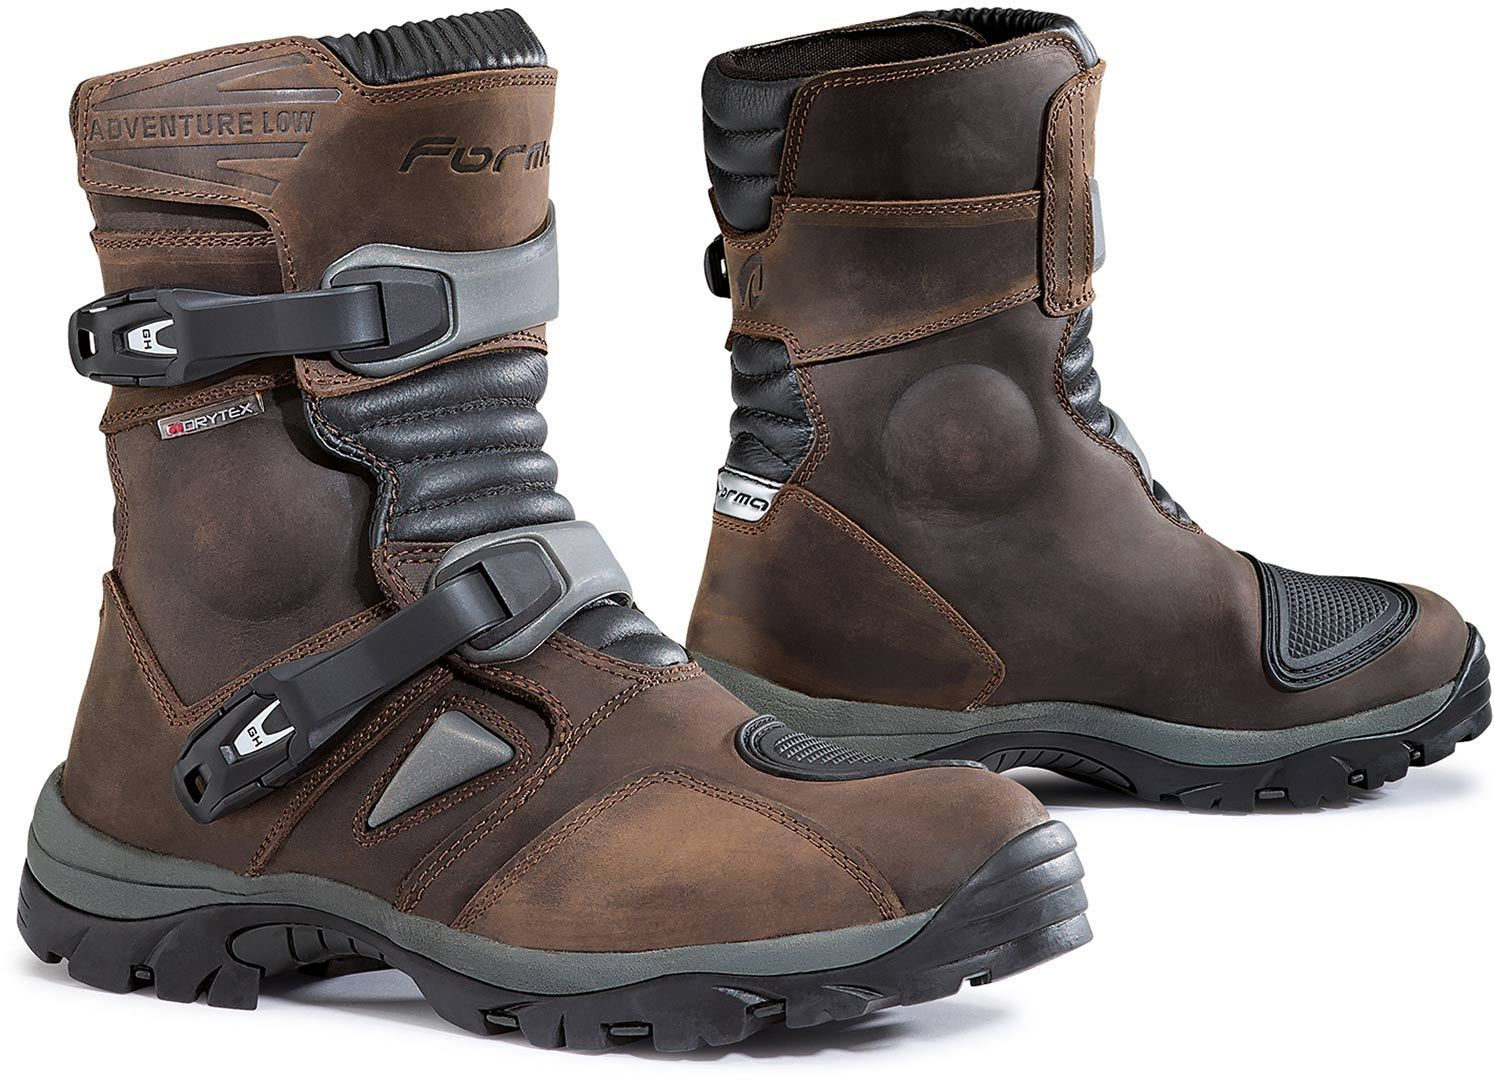 Forma Adventure Low Botas Motorista Marrón 45